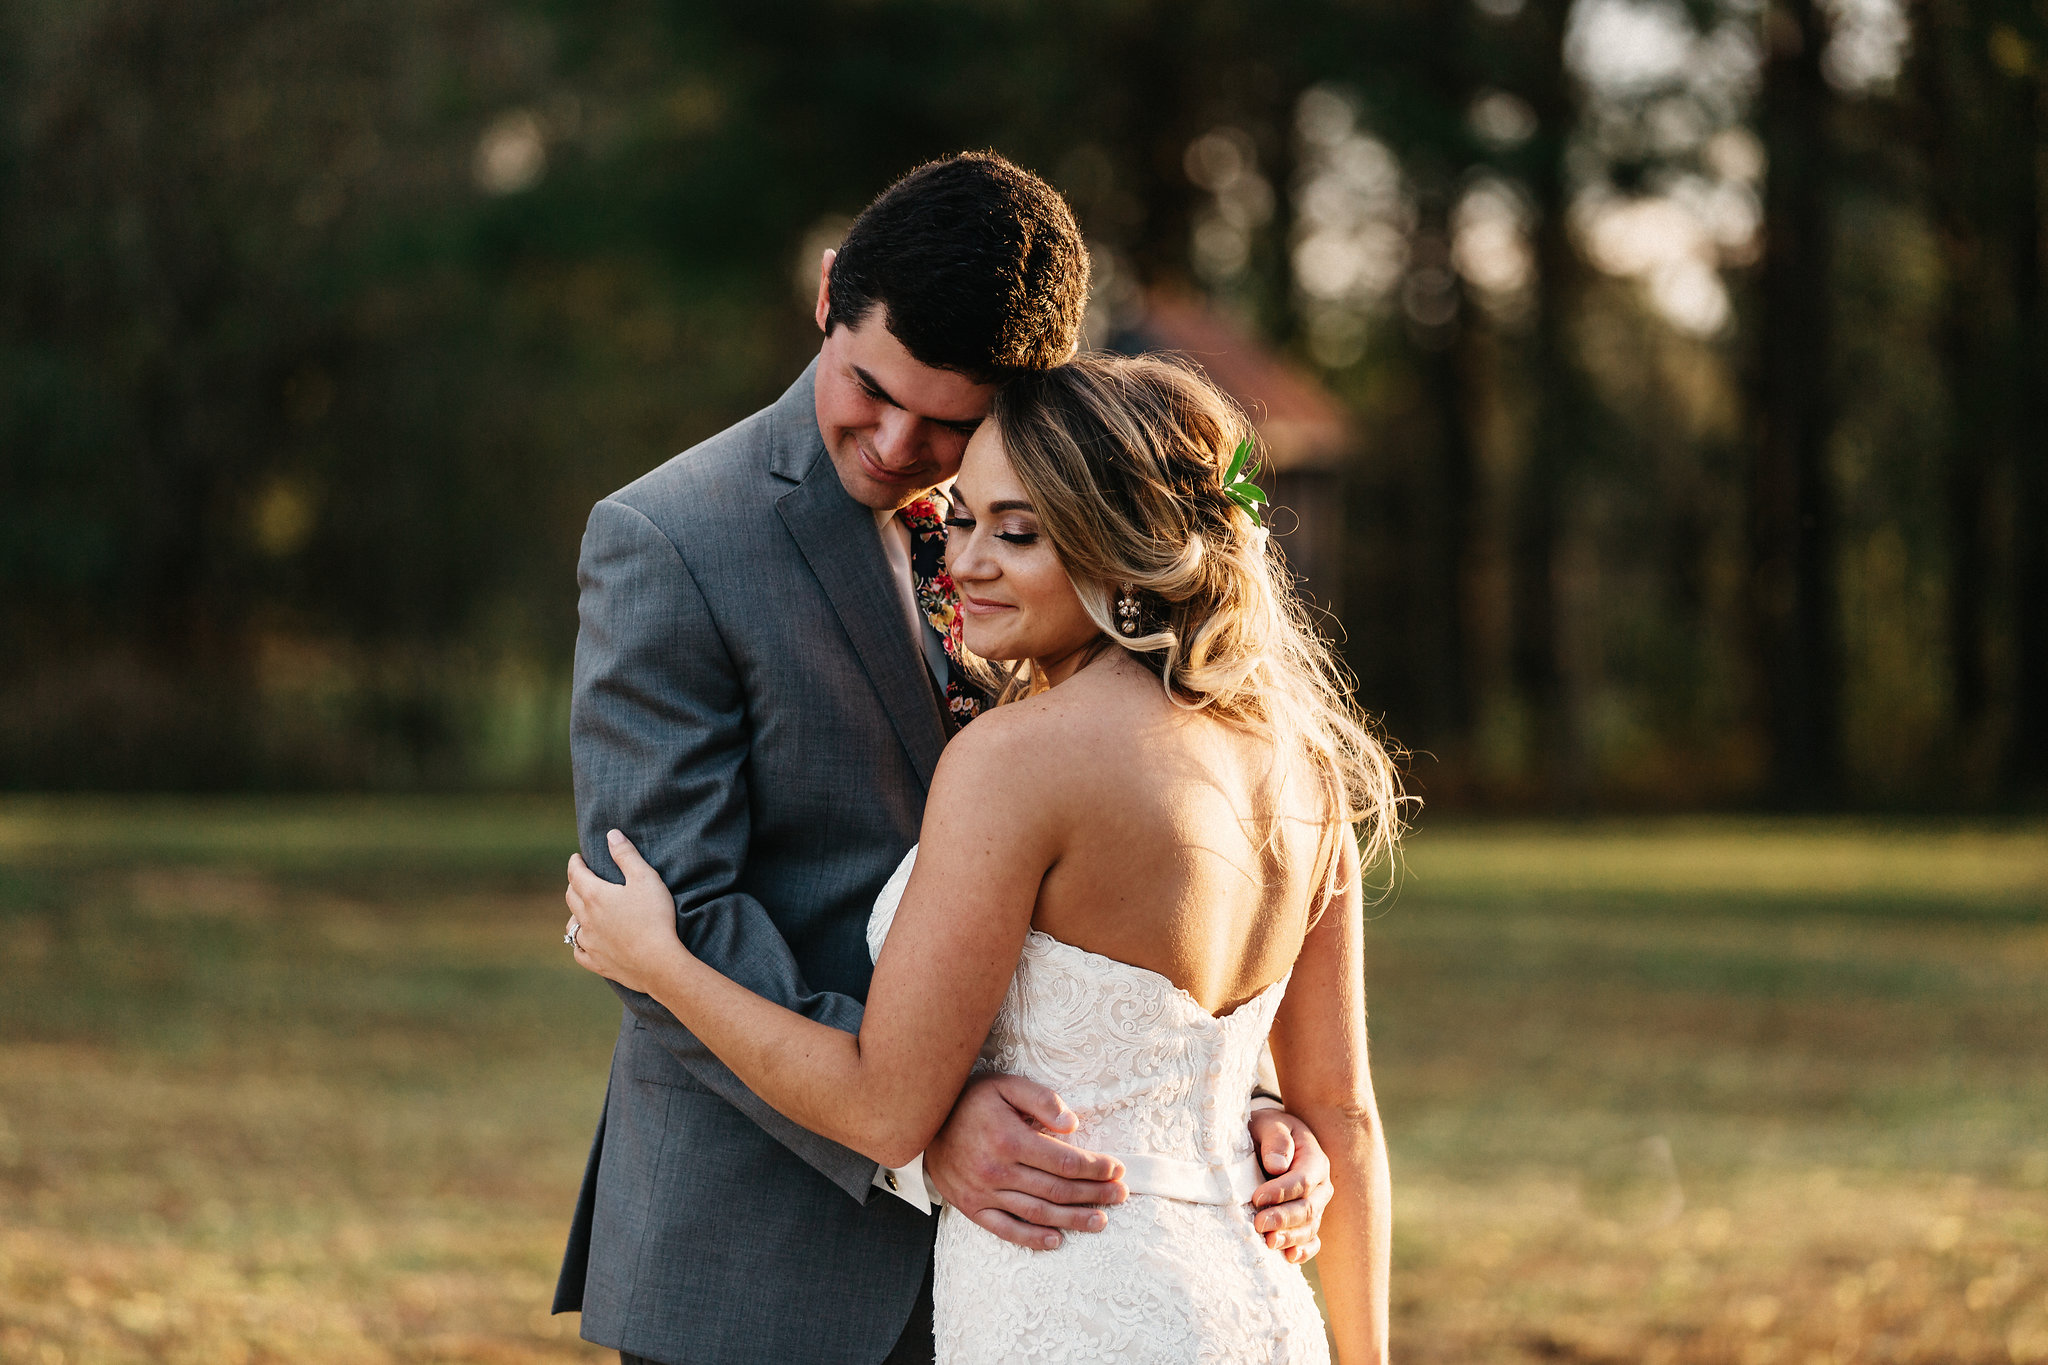 Ashley&NathanMarried2017-11-10at19.26.49PM80.jpg